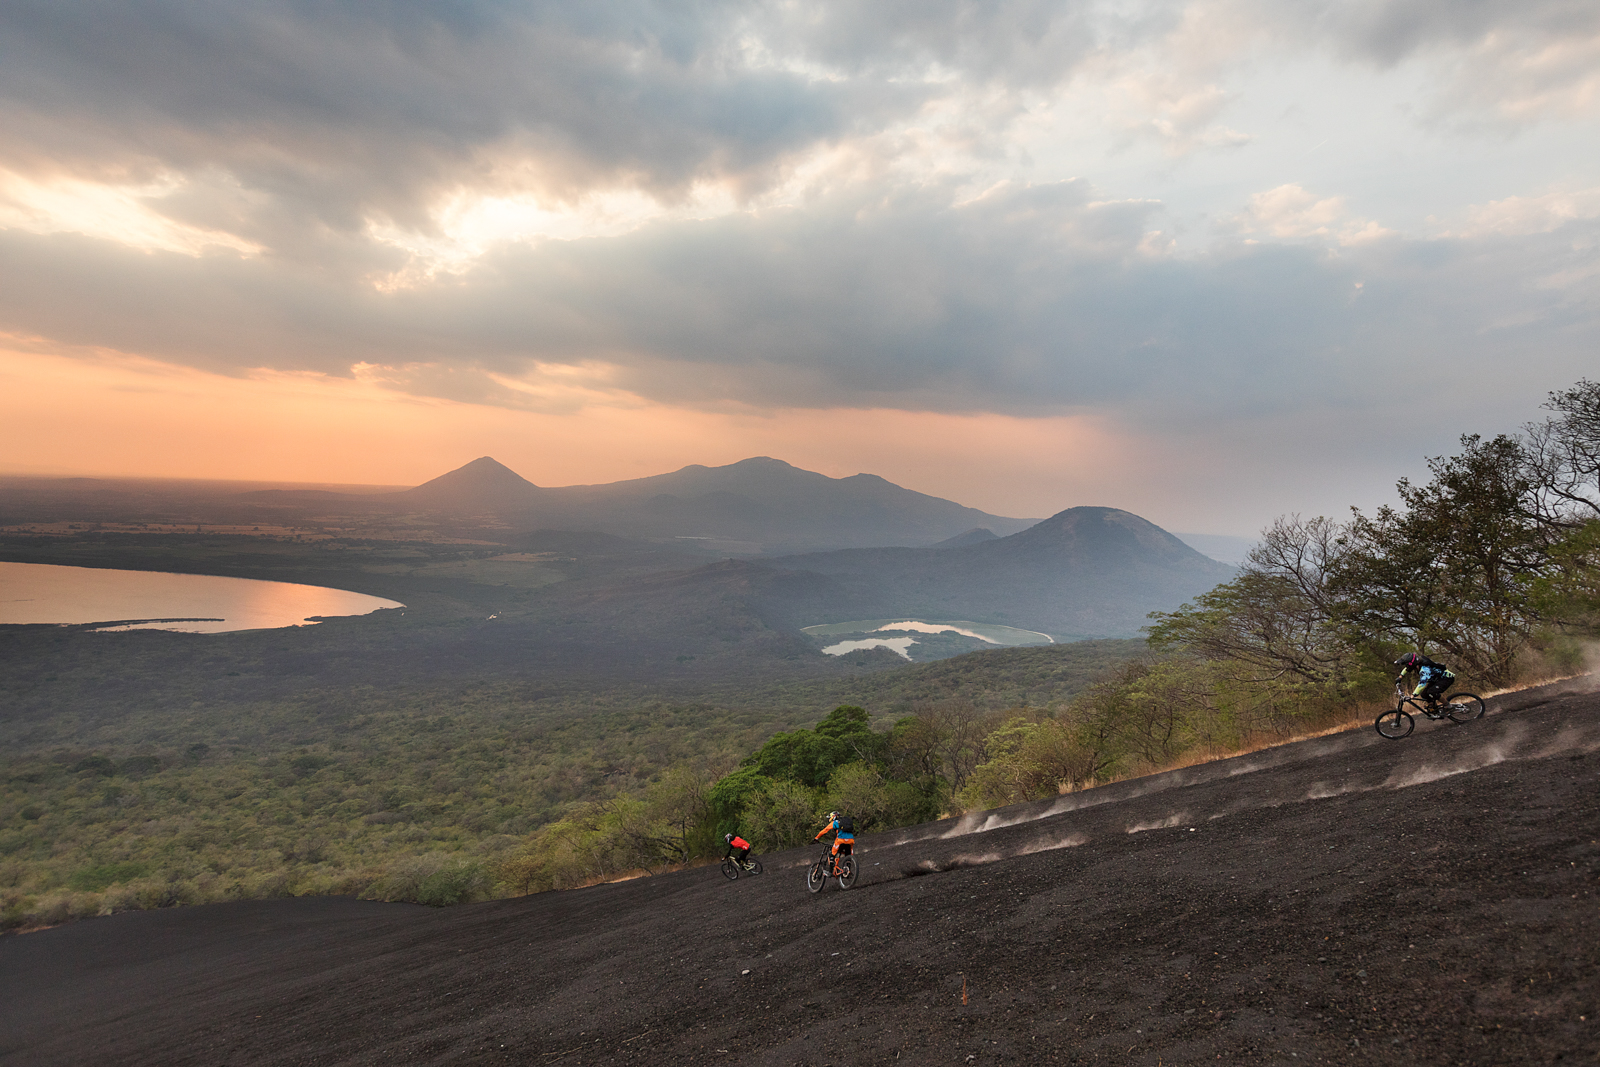 Mountain Bike the volcano Momotombo for Schwalbe by Boston based commercial sports photographer Brian Nevins